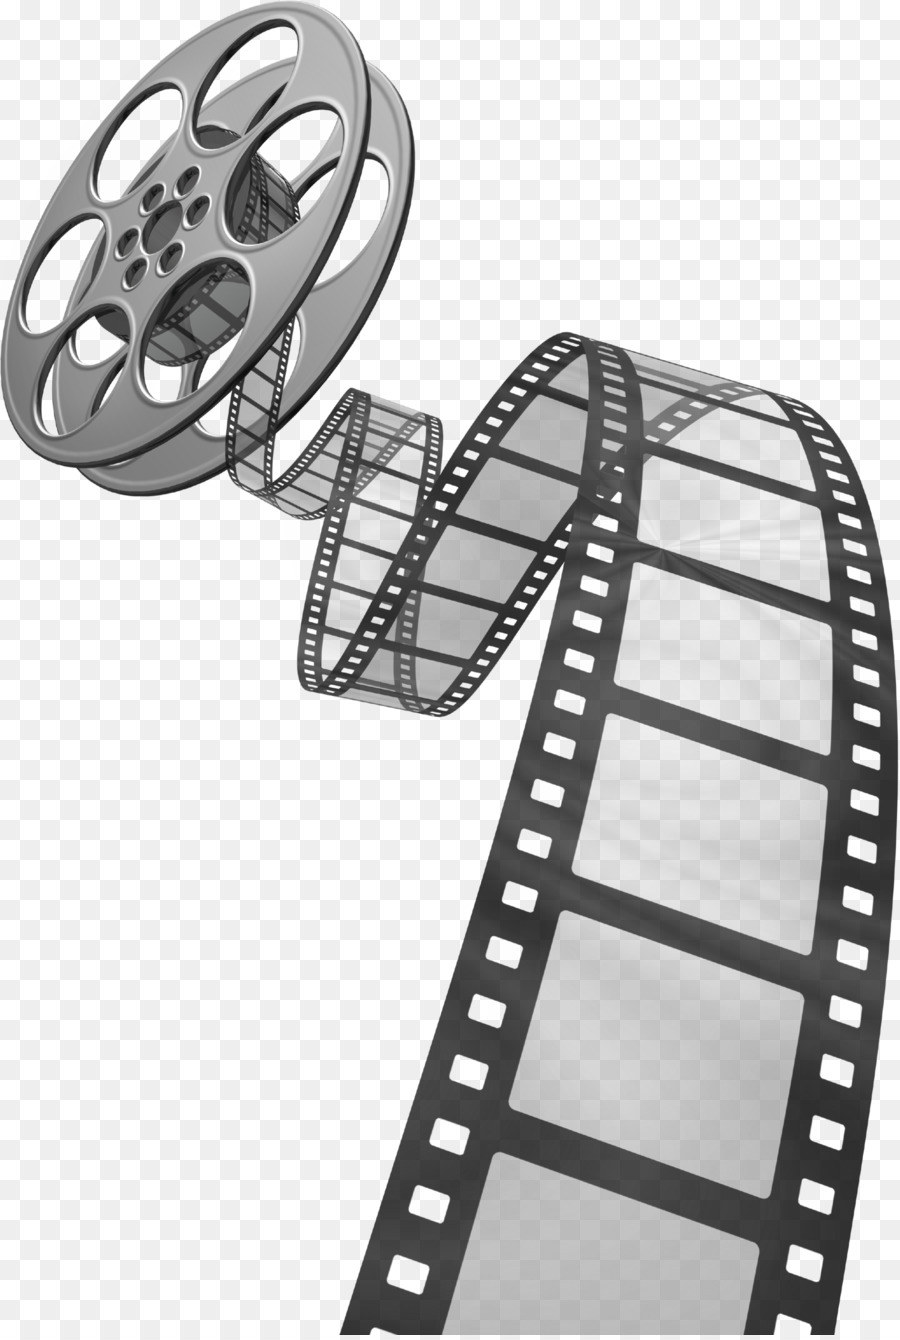 photographic film reel clip art movie film png download 1600 rh kisspng com movie film clipart vector movie film clipart free download